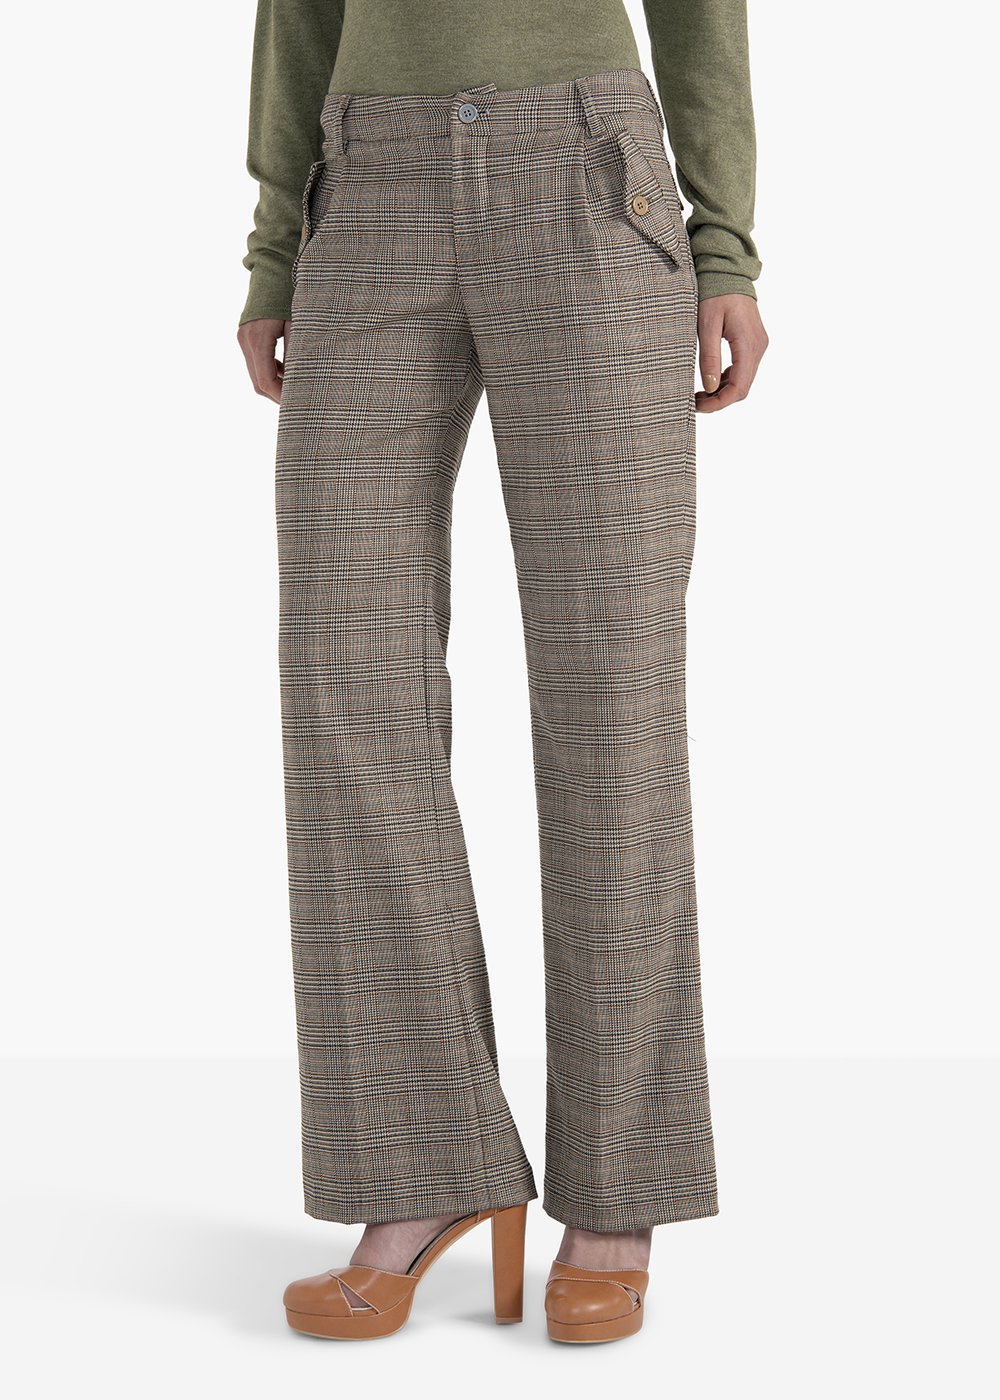 Trousers Poly in poly-viscose Ashley patterned check - Beige / Marrone Fantasia - Woman